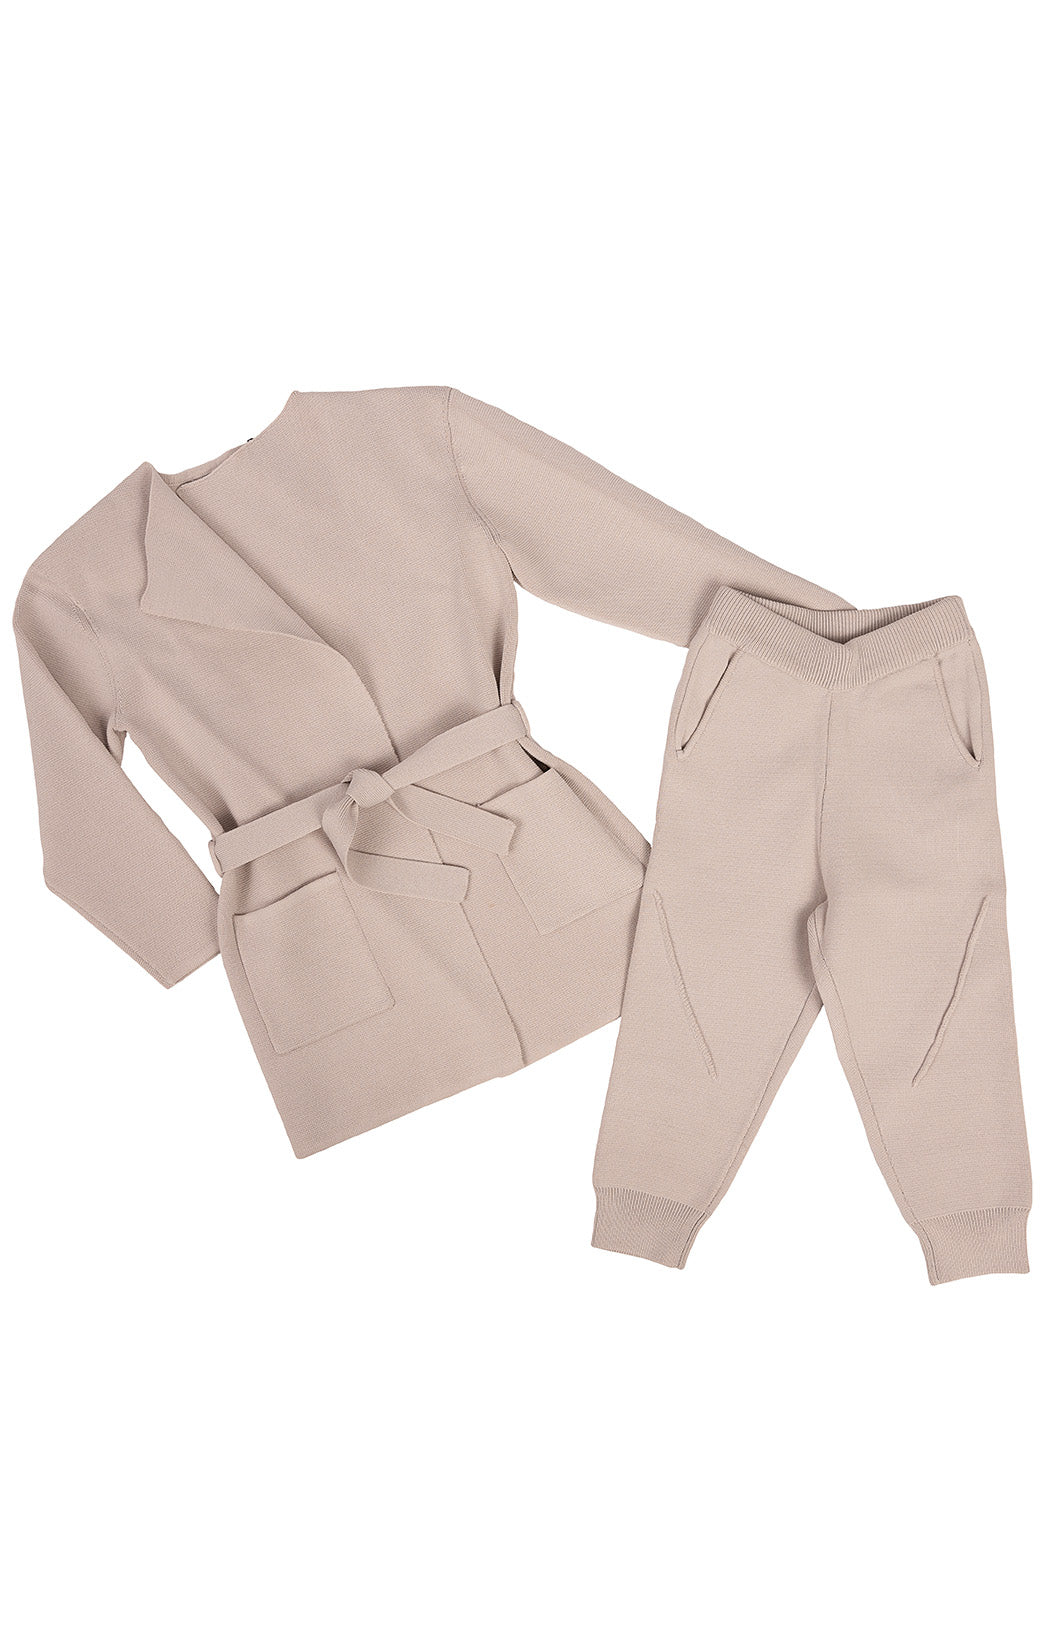 Jacket and pants Size: 12-24 months